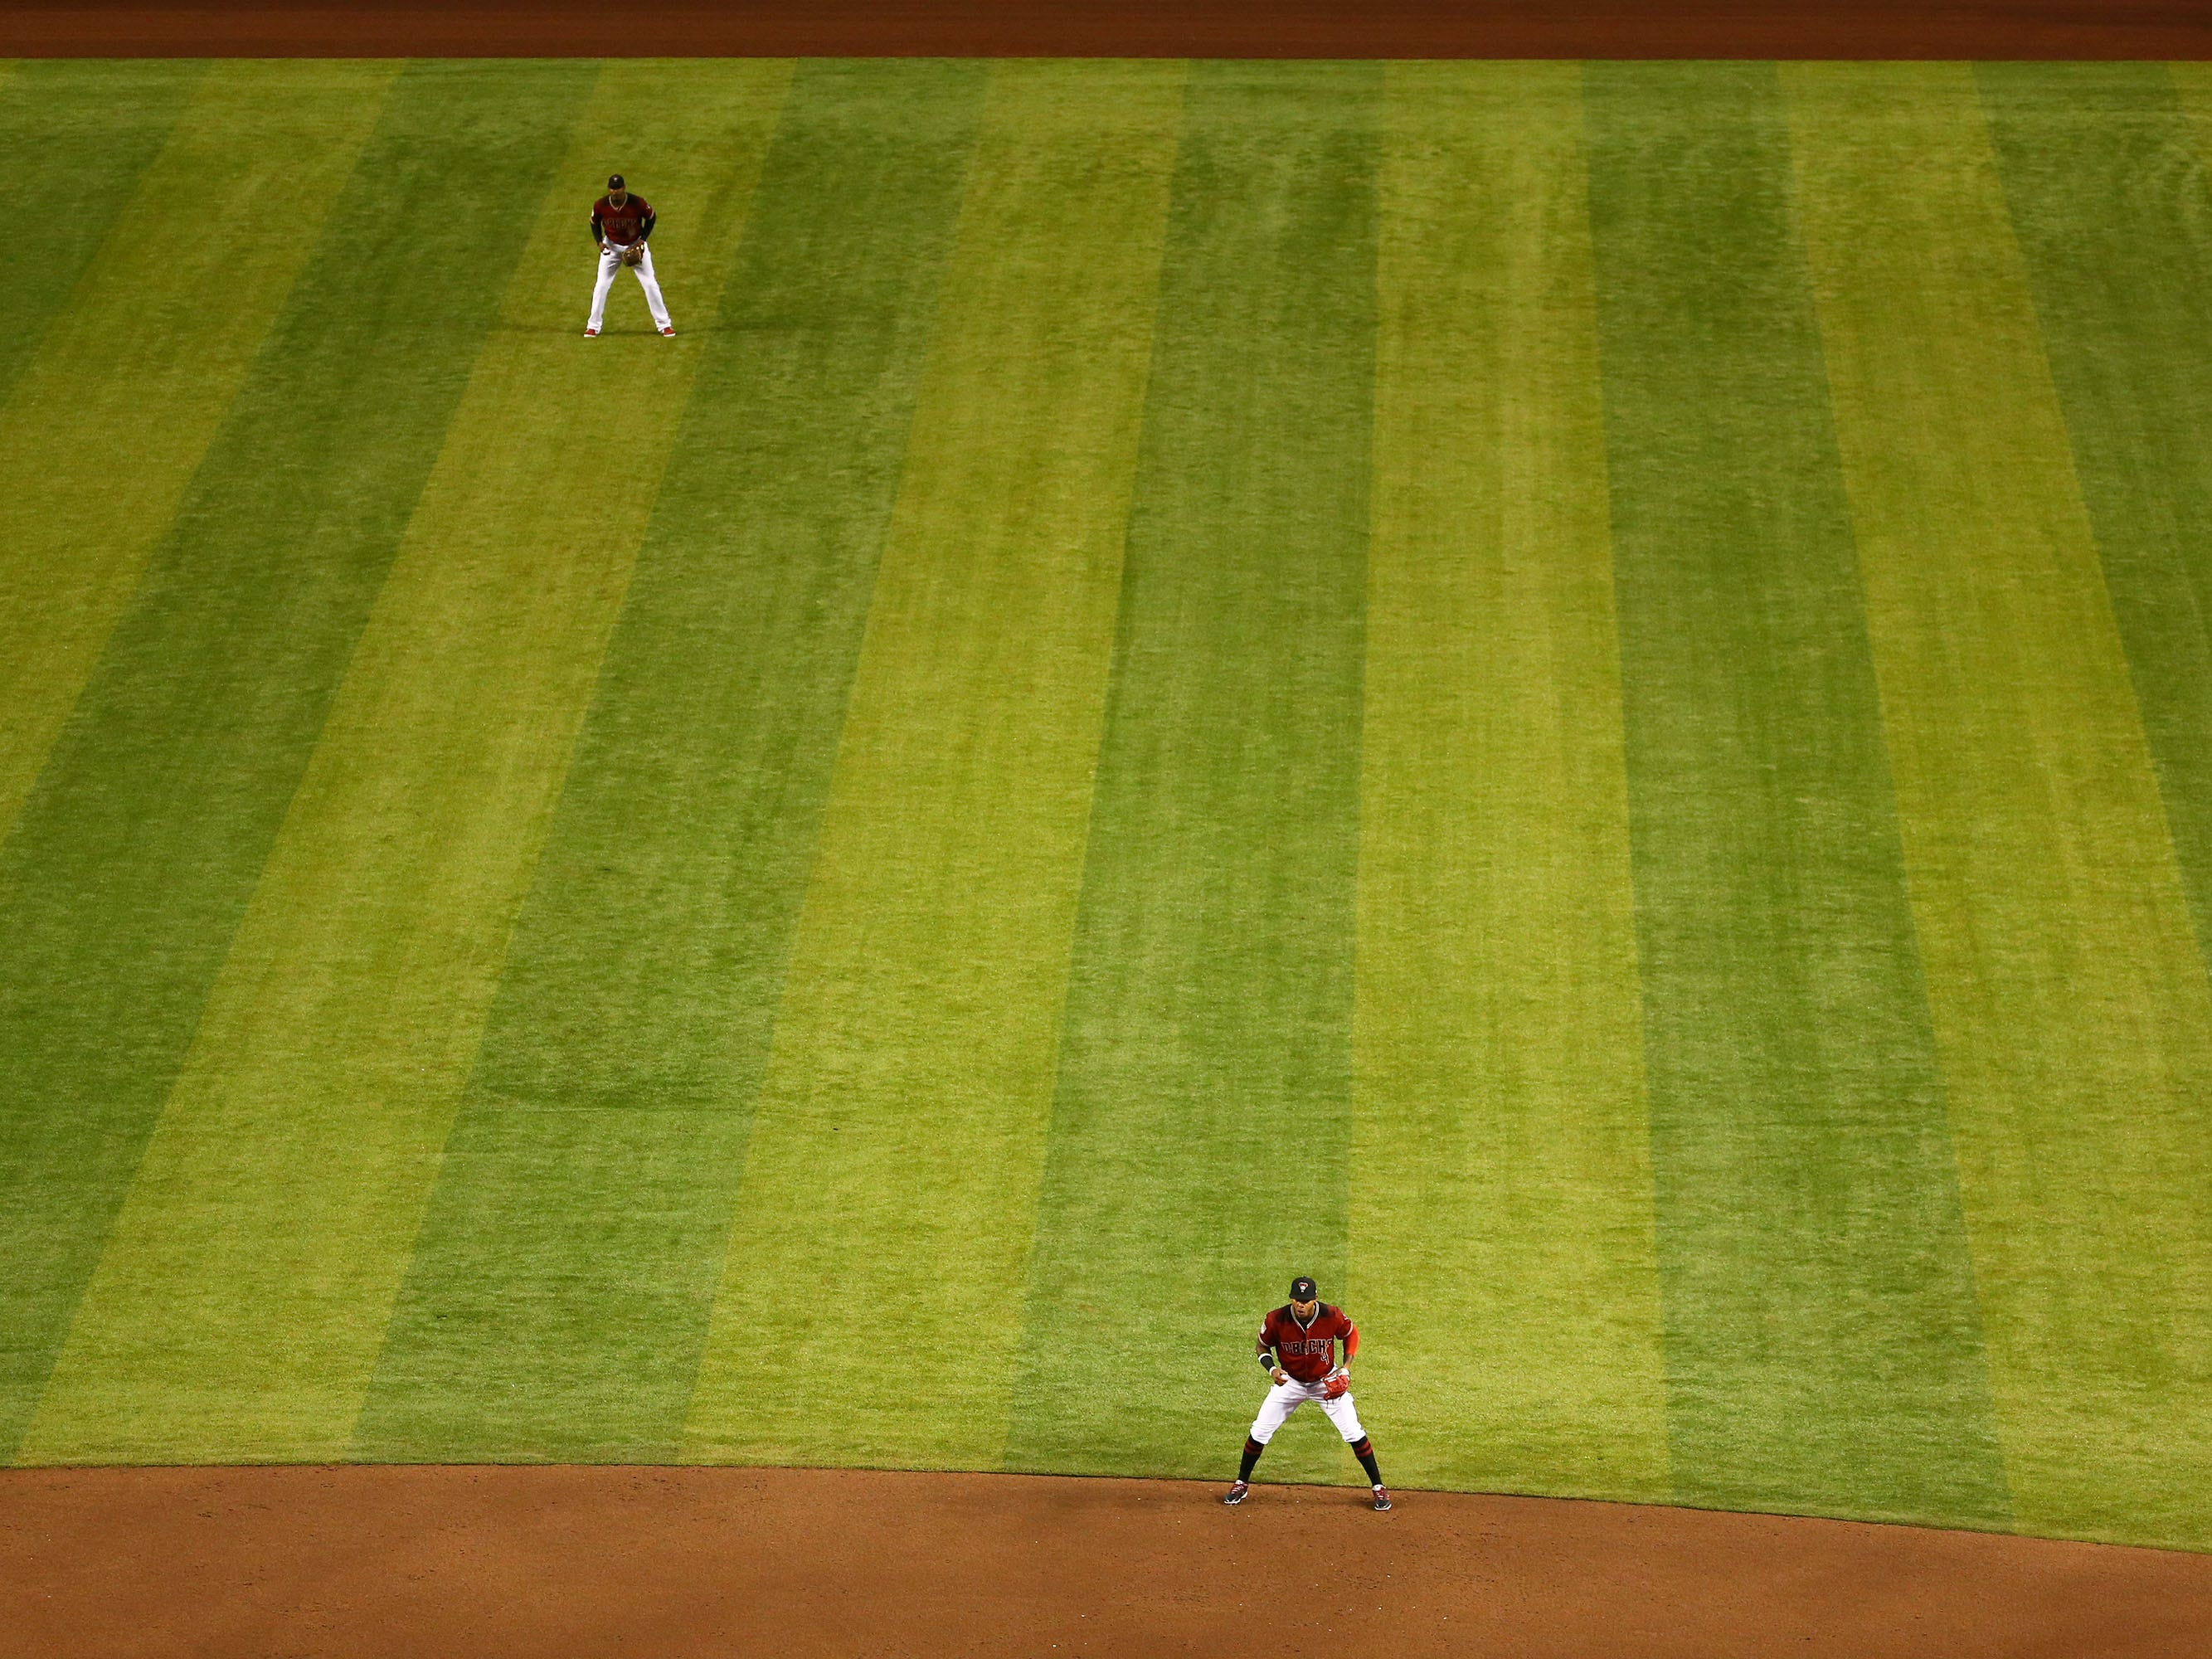 Arizona Diamondbacks second baseman Ketel Marte and centerfielder Adam Jones against the Chicago White Sox in the second inning during a spring training game on Mar. 25, 2019 at Chase Field in Phoenix, Ariz. Arizona installed Shaw ÒB1KÓ synthetic grass over the off season replaying their natural grass.